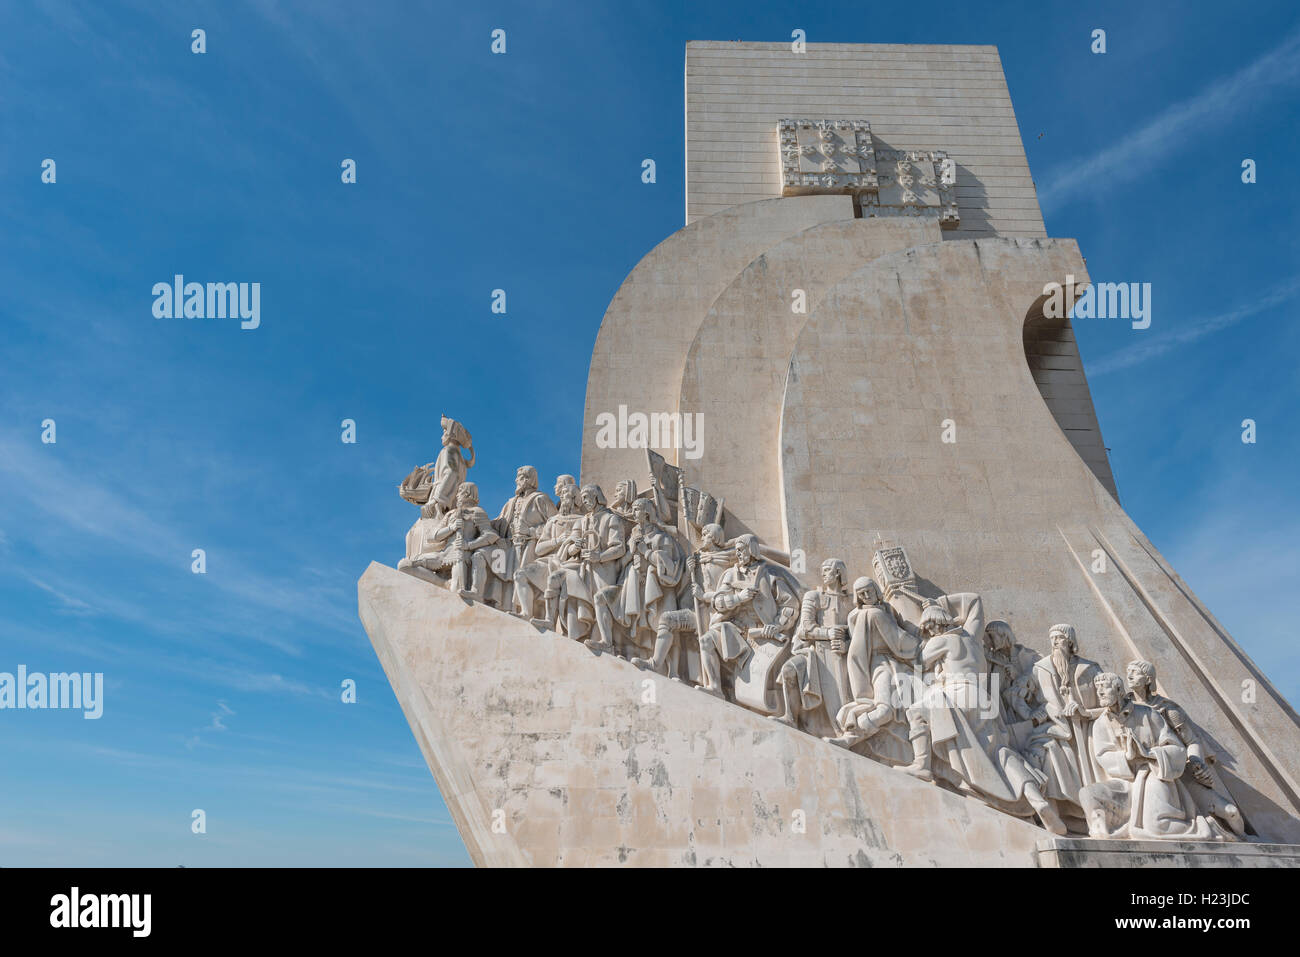 Padrão dos Descobrimentos, Monument to the Discoveries, close-up, Belém, Lisbon, Portugal Stock Photo